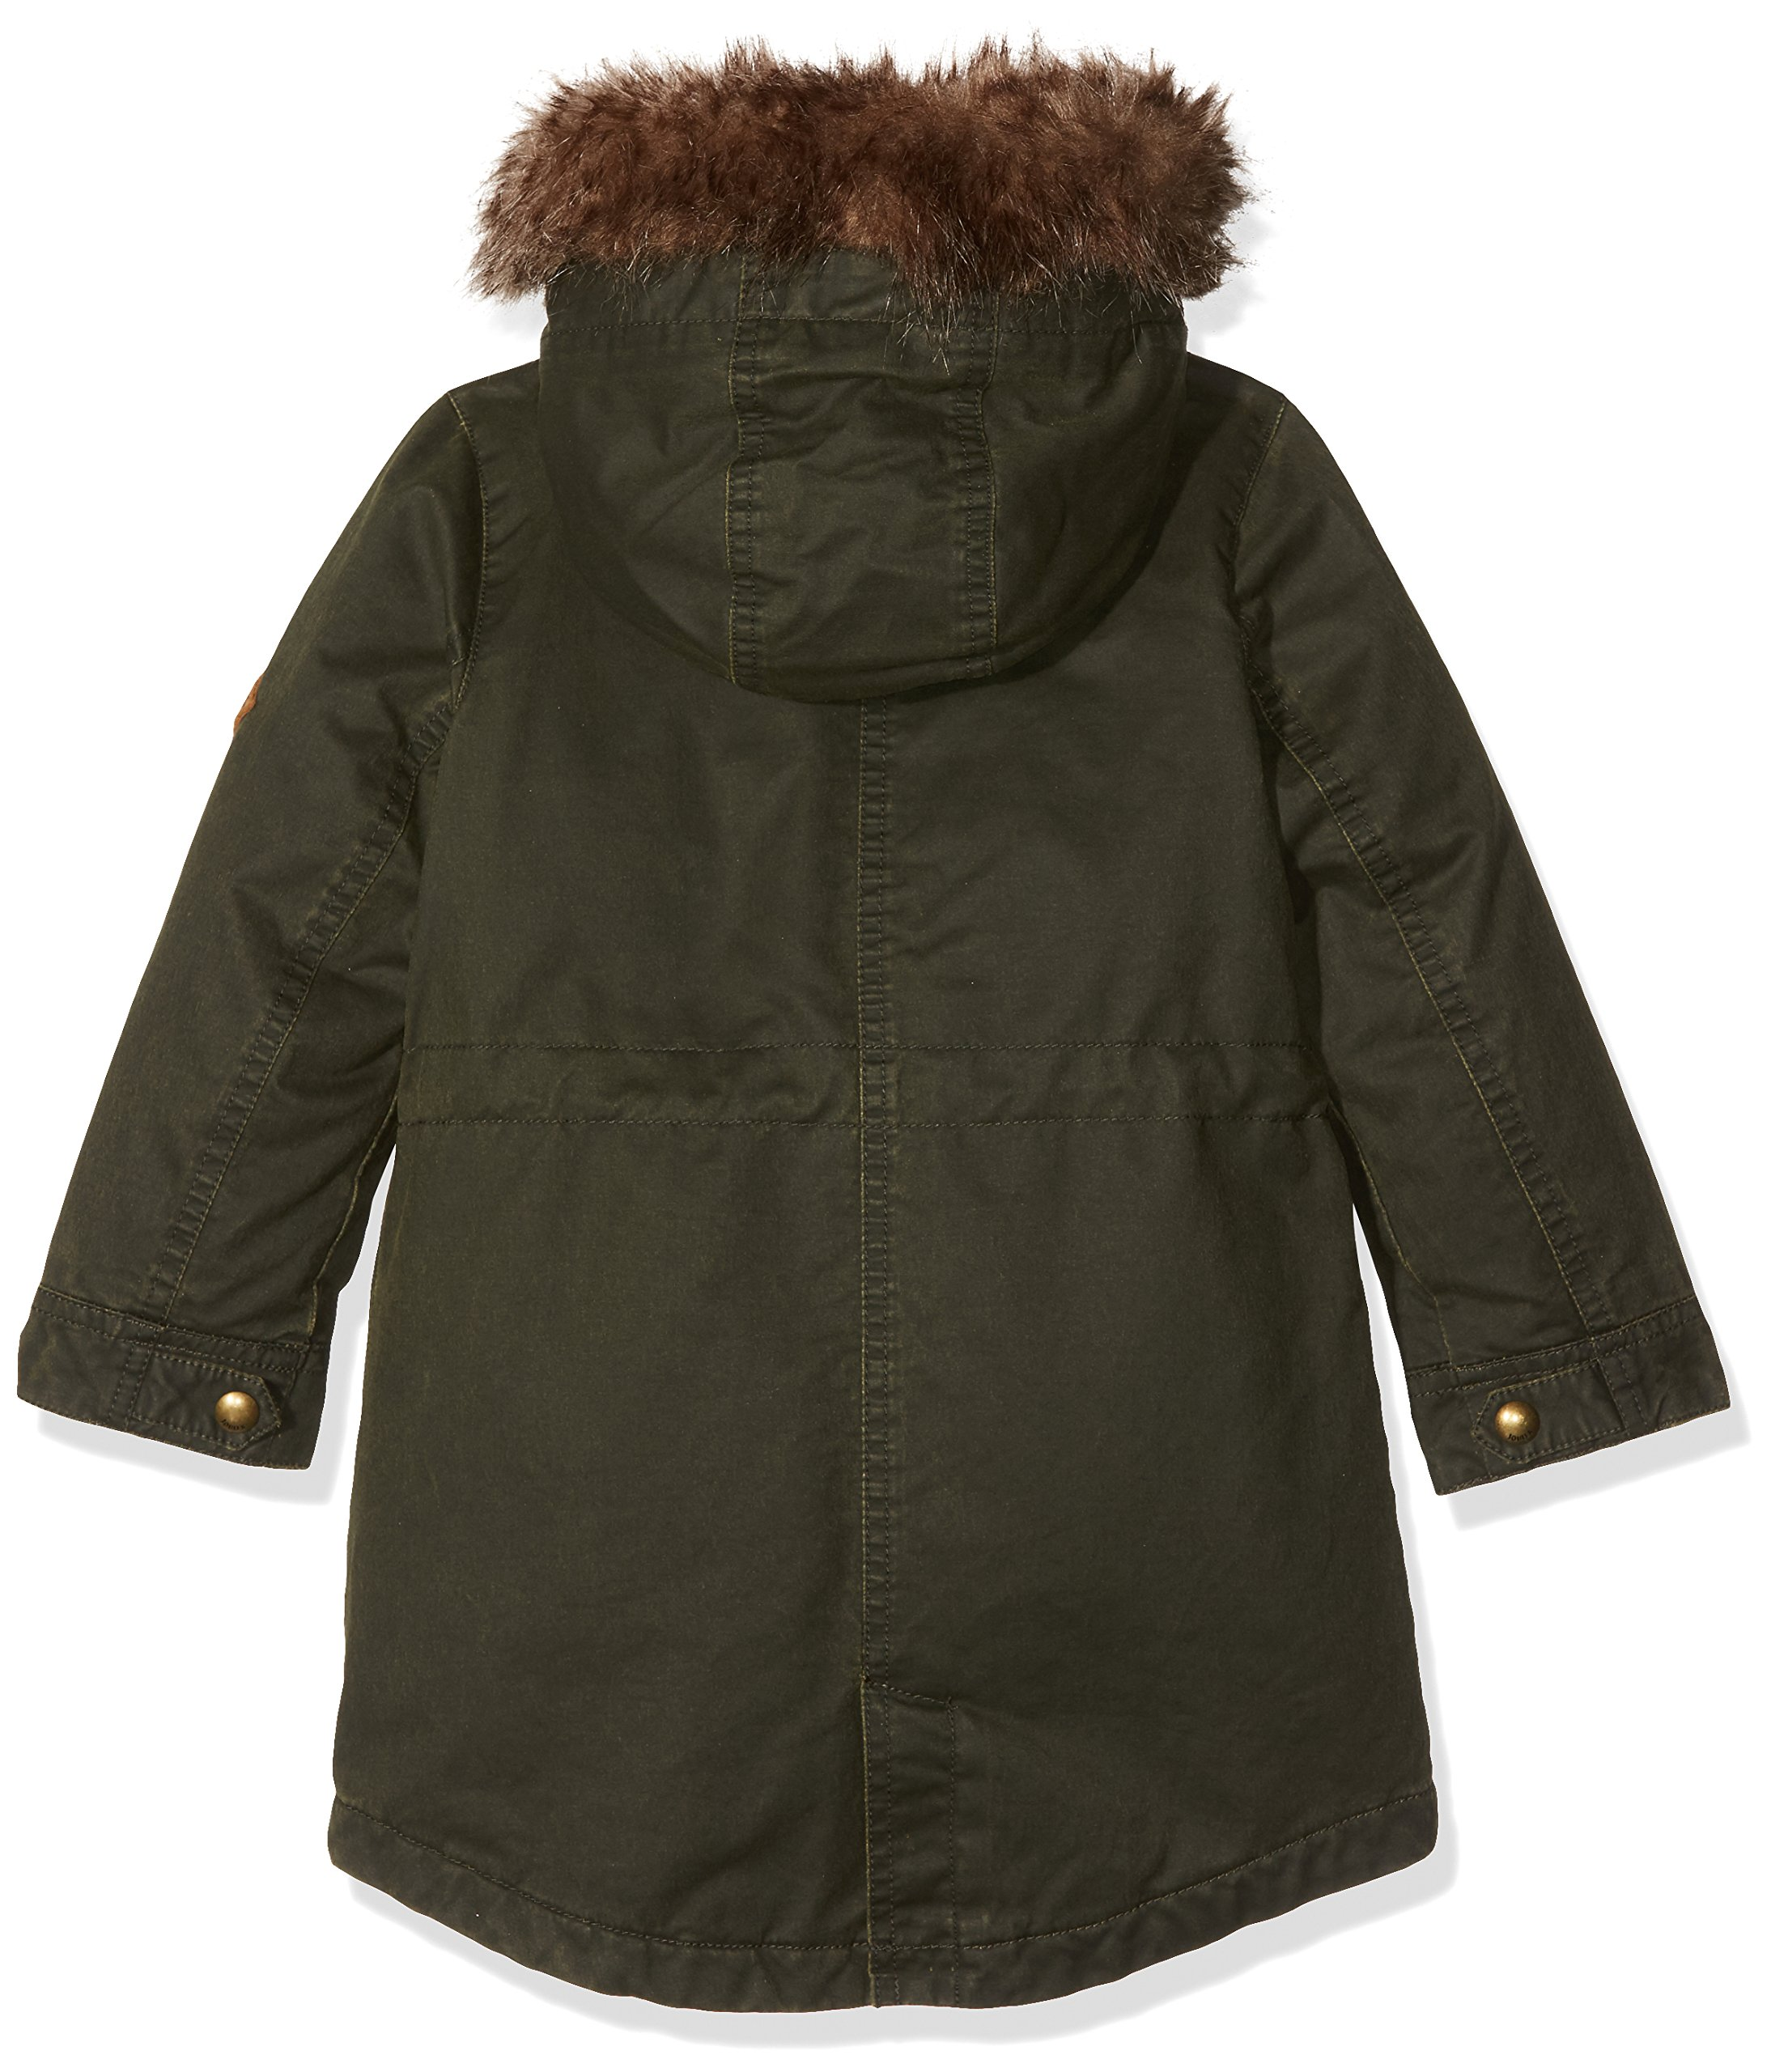 Joules Little Girls' Wynter Faux Wax Parka, Everglade, 5 by Joules (Image #2)